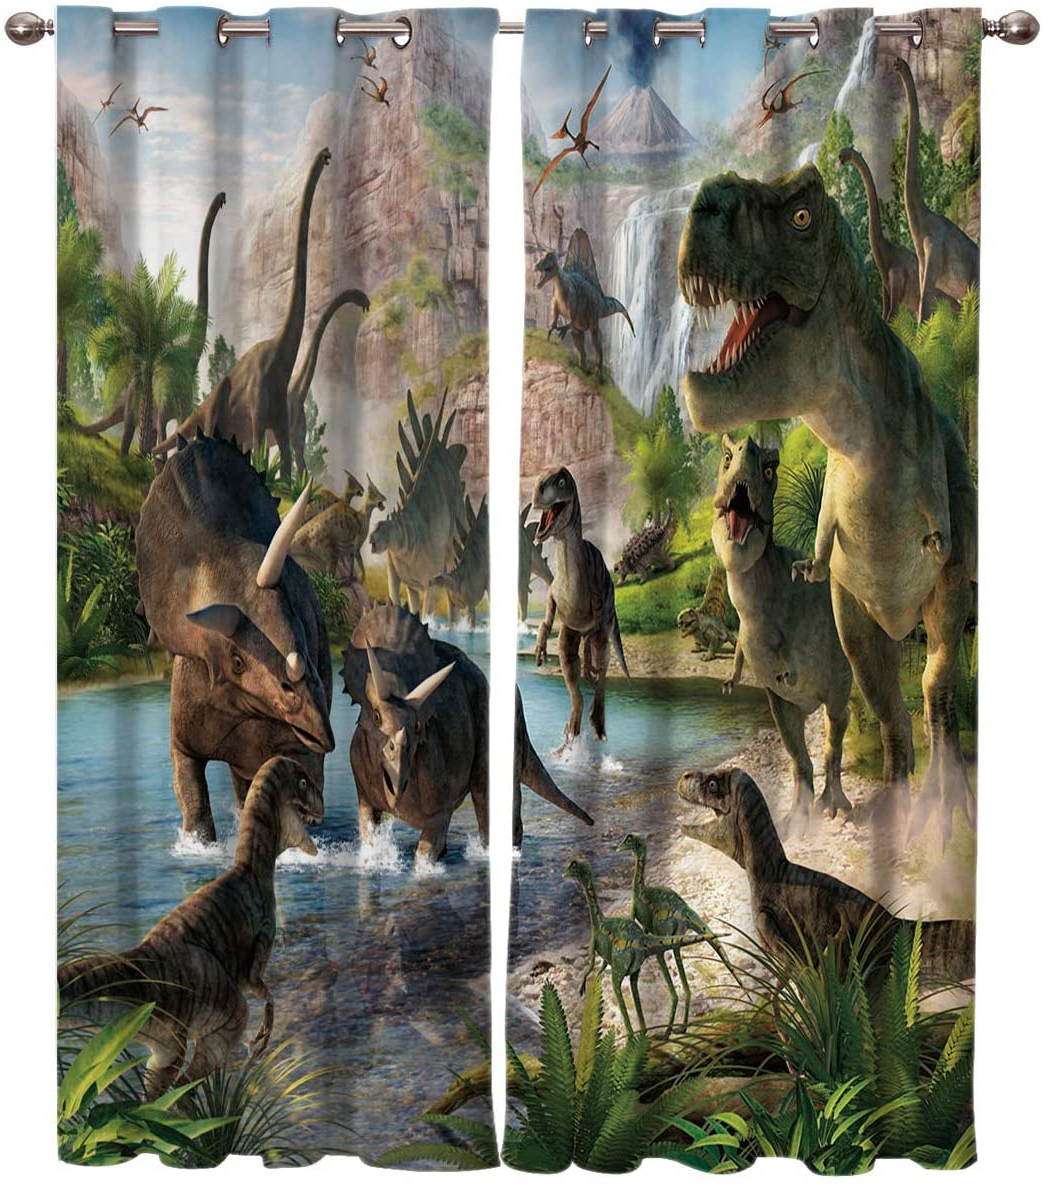 Blended Fabric Mod Dinosaur 3 Piece Wall Hangings Set Intended For Well Known Printed House Home Decor Window Curtains, Dinosaur Gathering At Mountain – 2 Panel Window Treatment Set With Grommet Window Drapes Covering For (View 14 of 20)